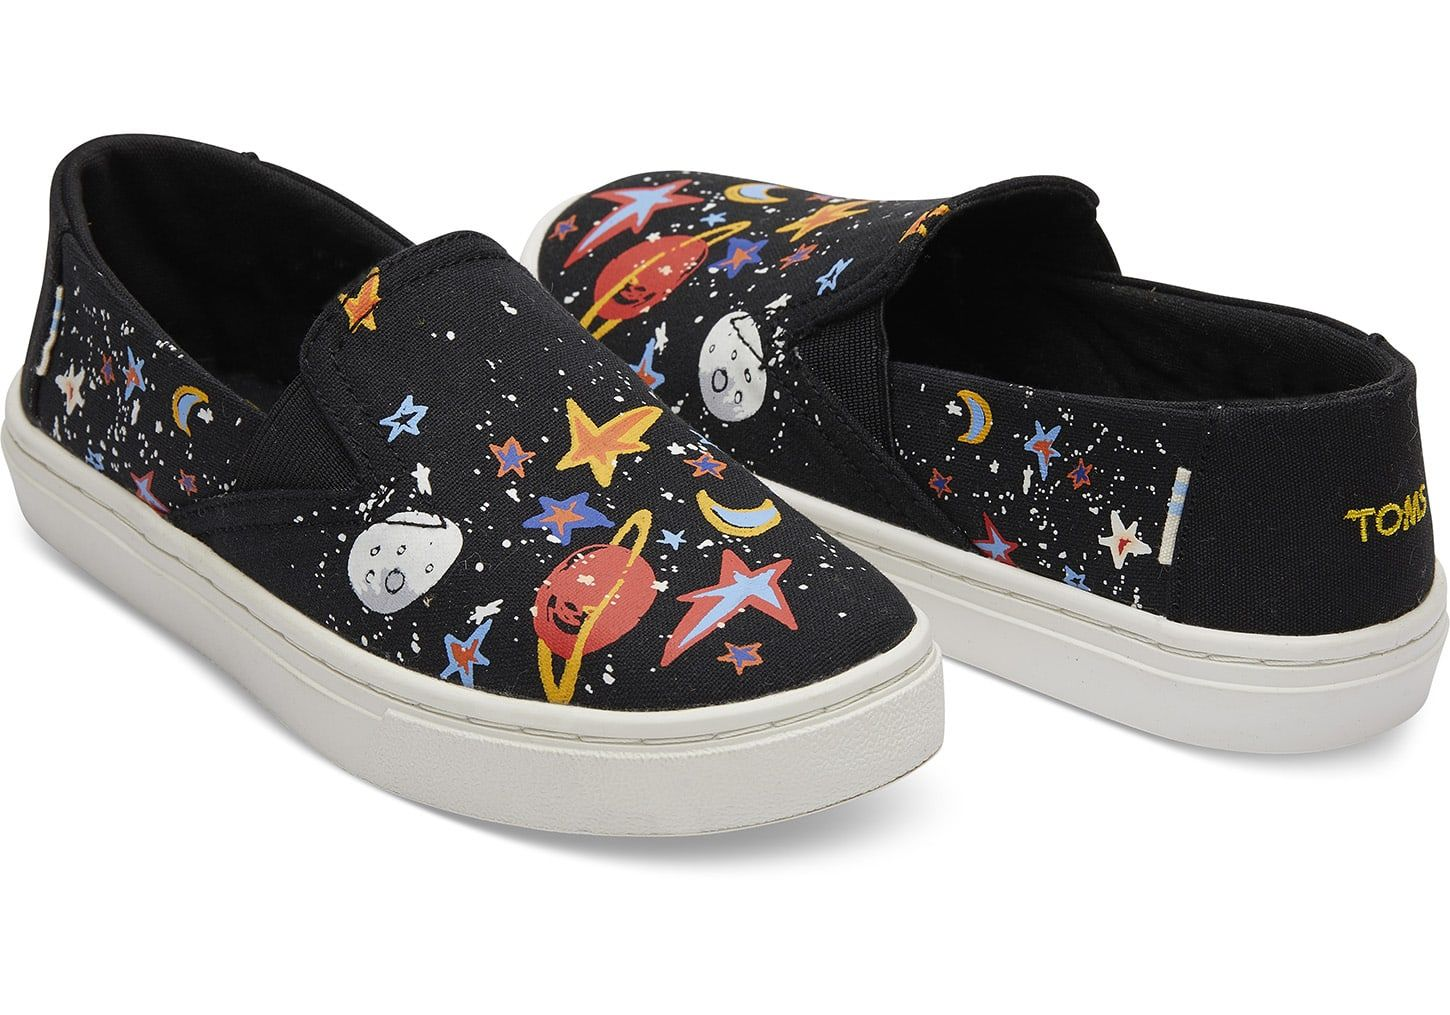 8b0a9d57e3c Black Canvas Glow In The Dark Cosmic Print Youth Luca Slip-Ons ...